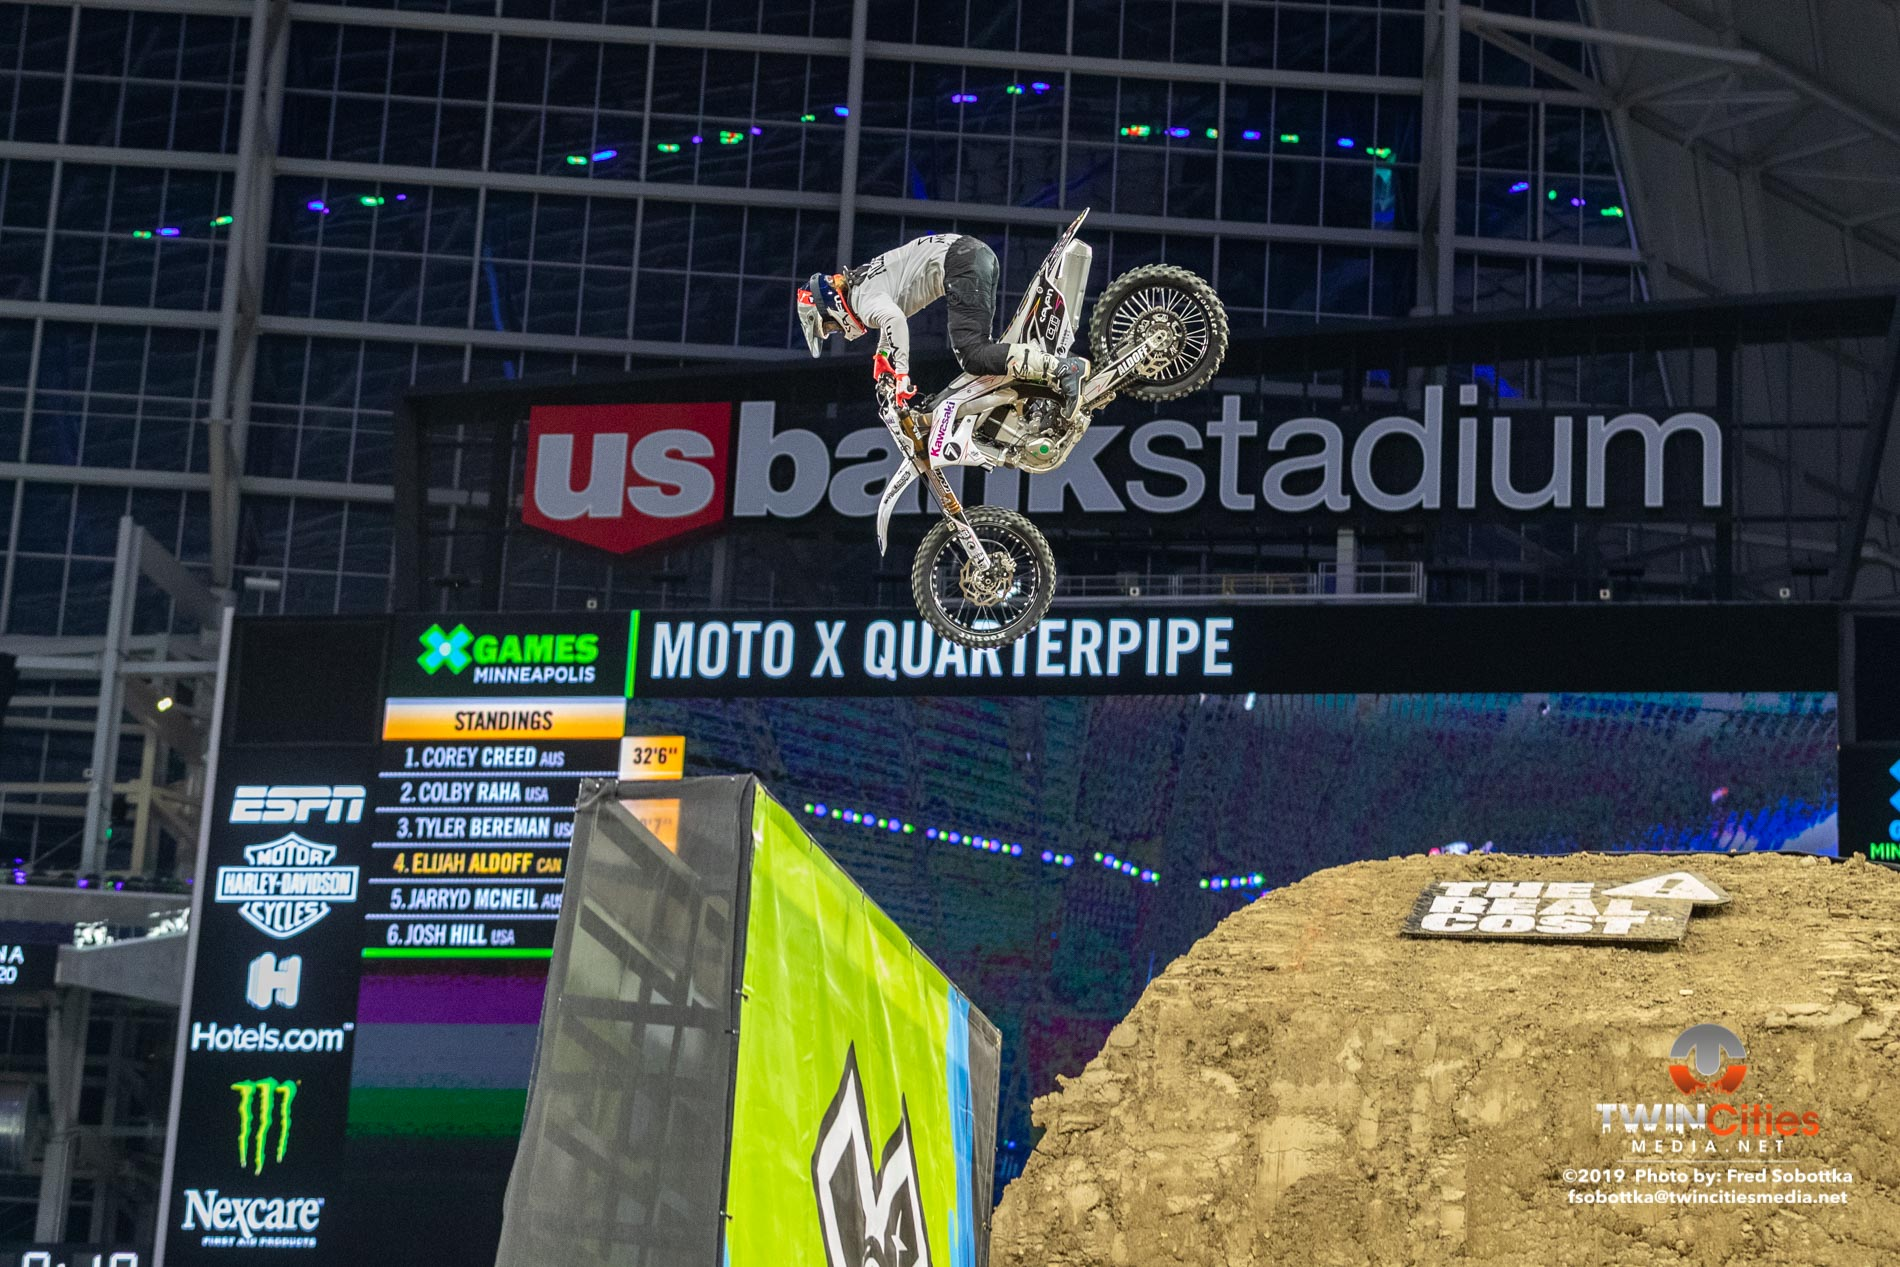 Moto-X-Quarterpipe-High-Air-04